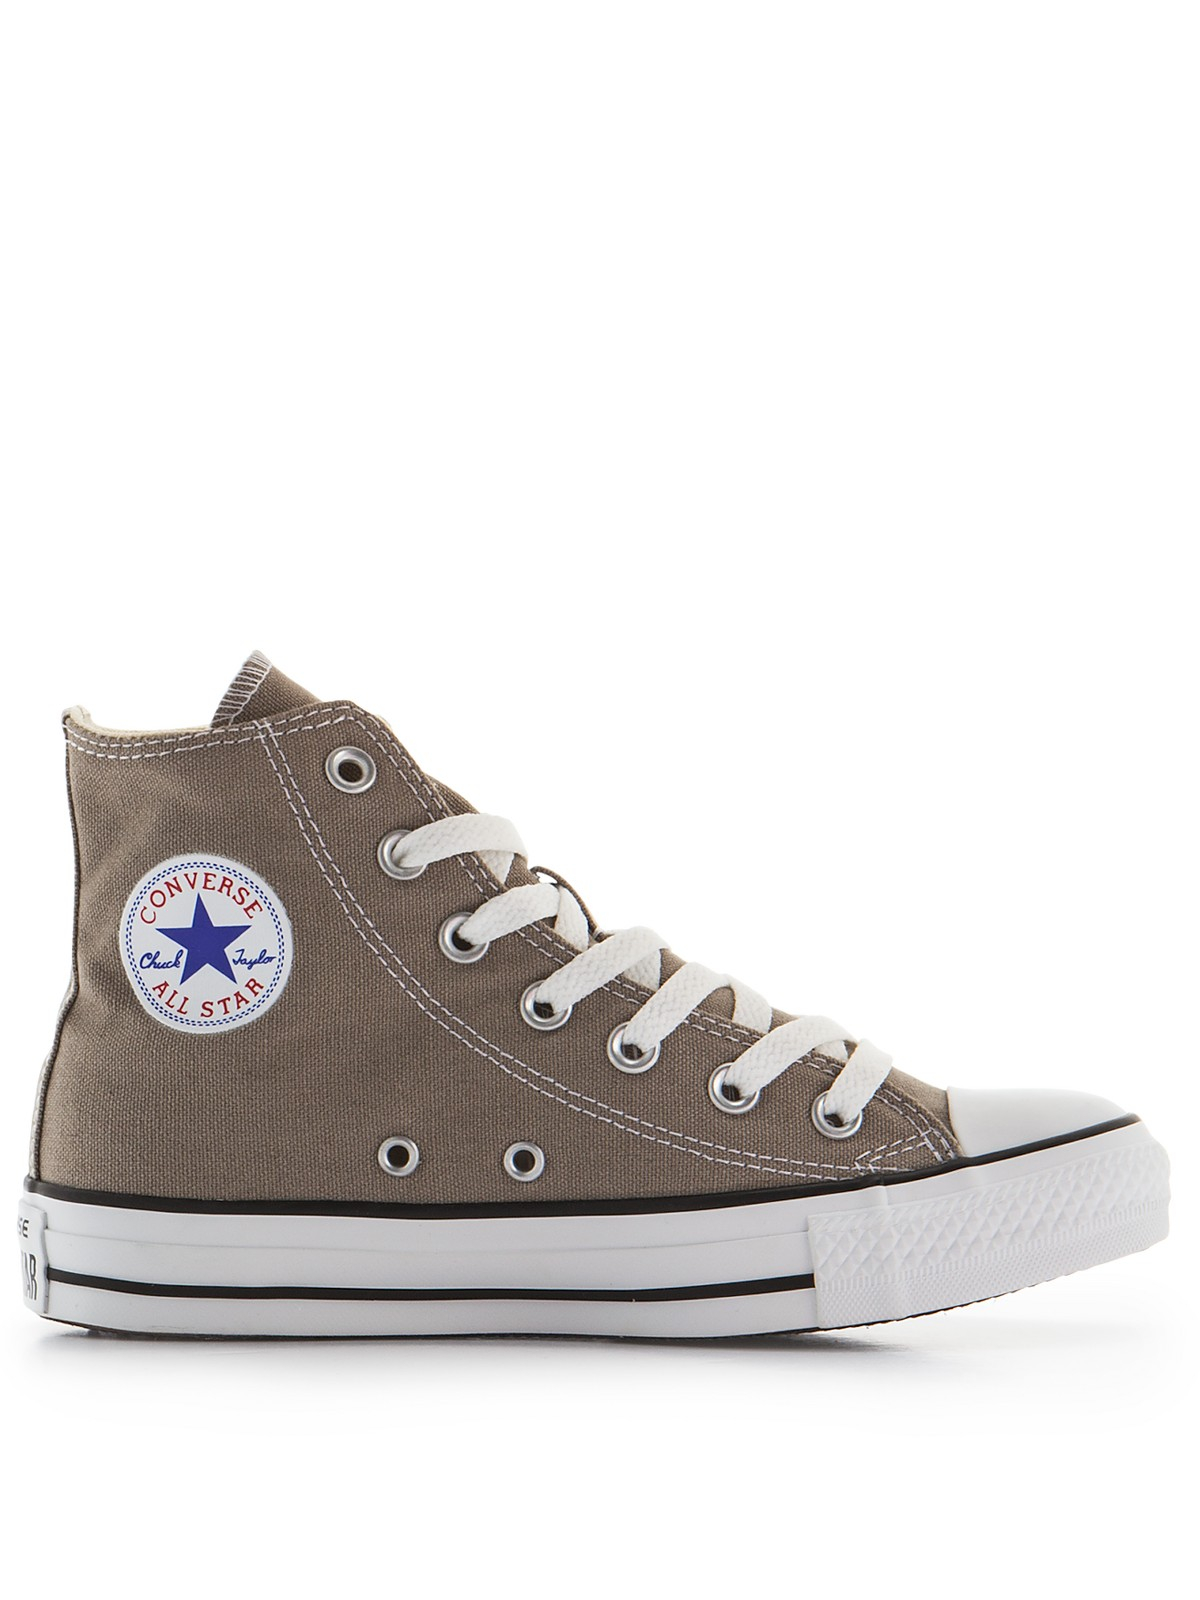 Converse Chuck Taylor All Star Canvas Hitop in Gray for .